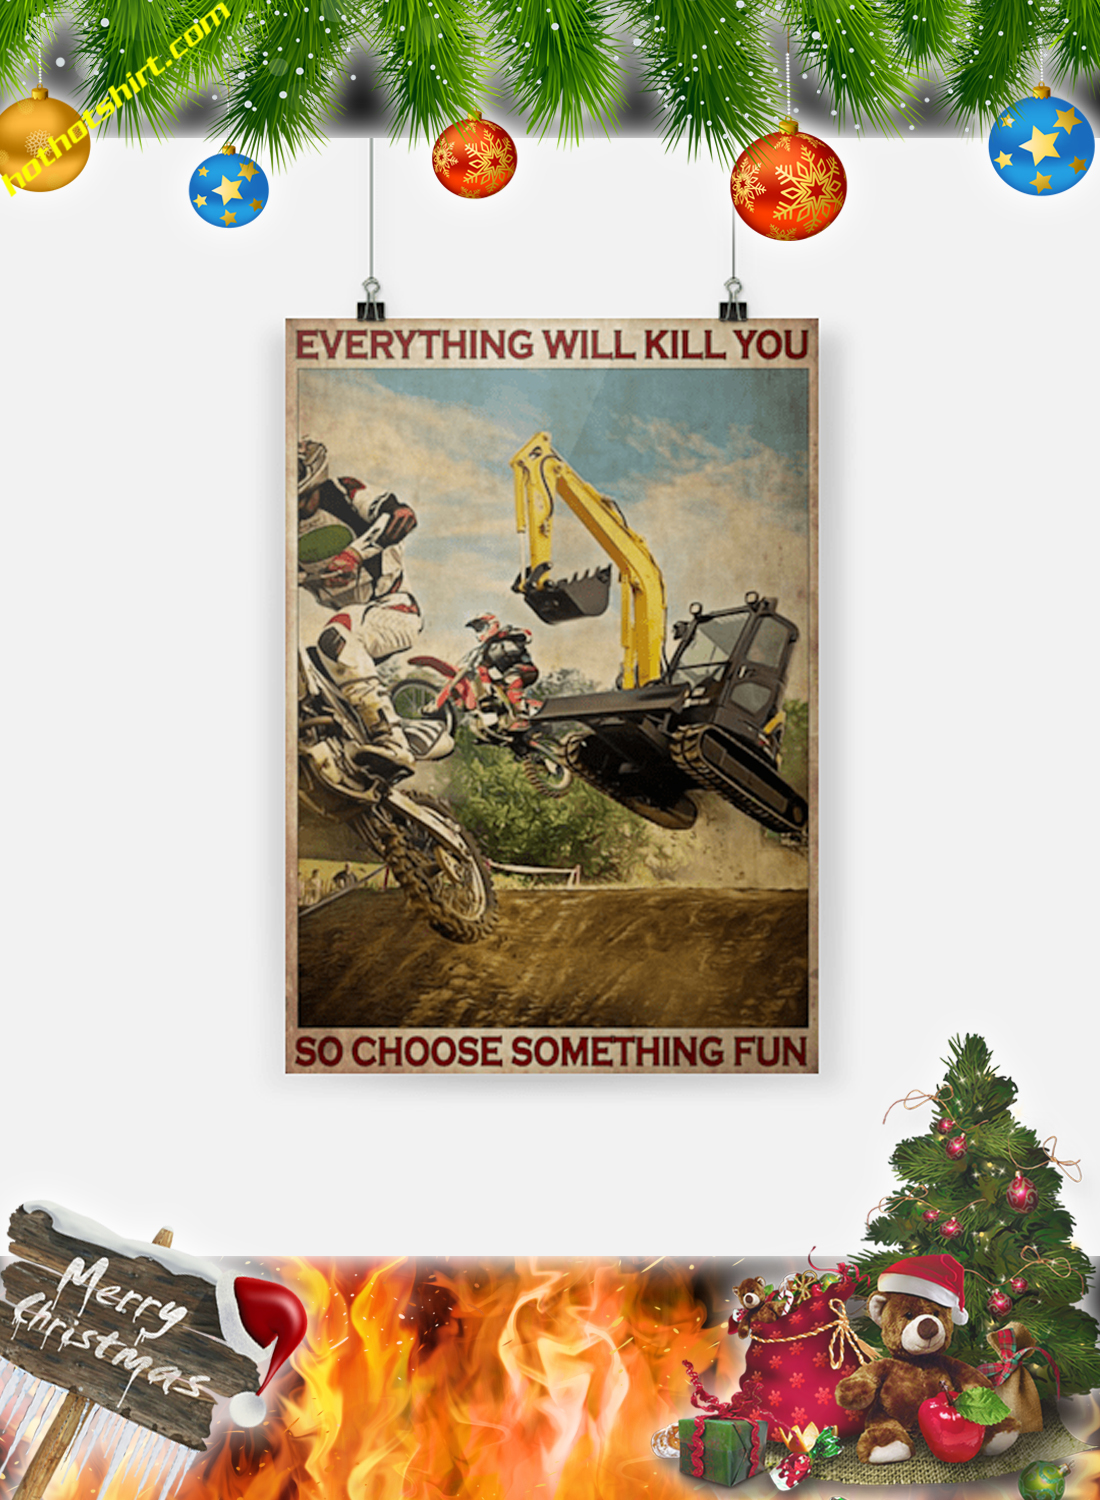 Motorcross and excavator everything will kill you so choose something fun poster and canvas 2